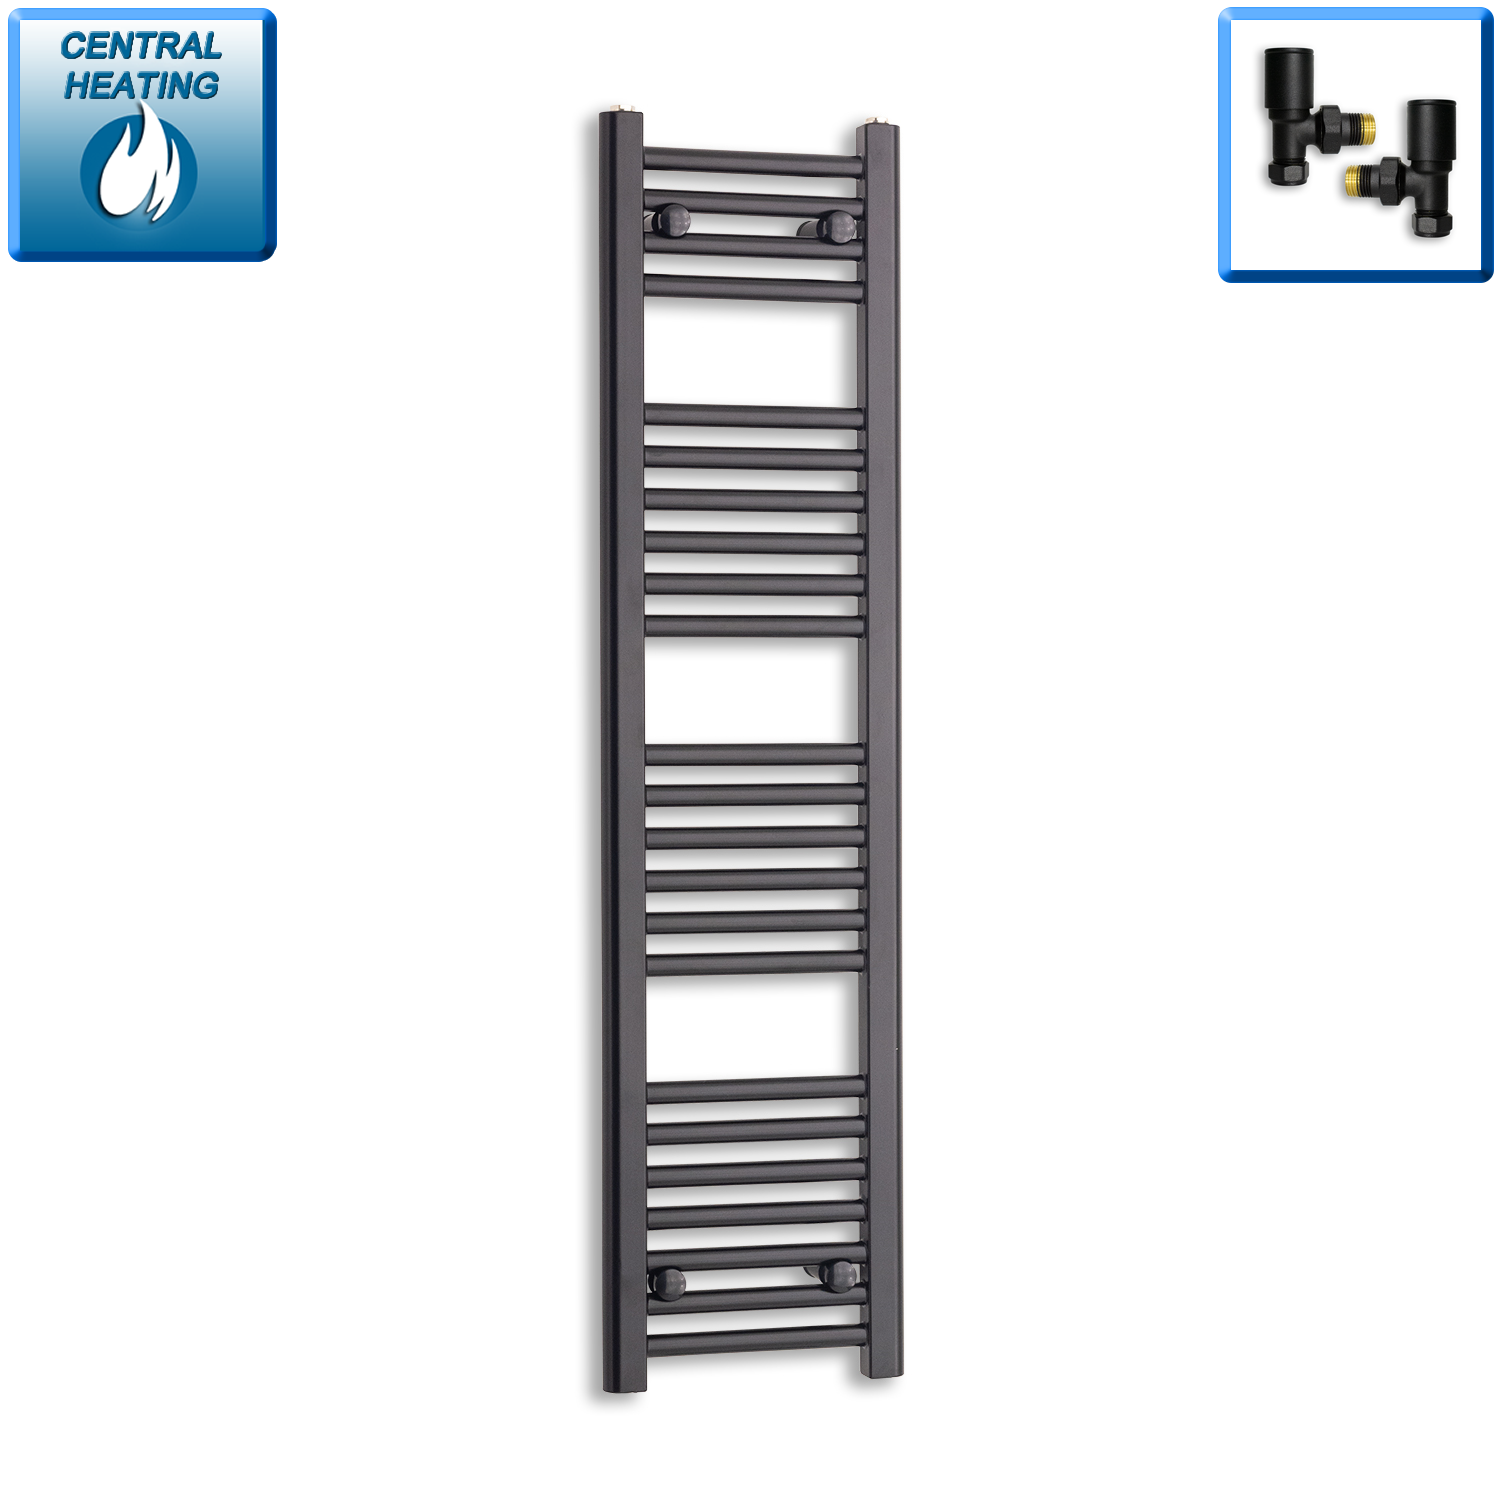 300mm Wide 1200mm High Black Towel Rail Radiator With Angled Valve